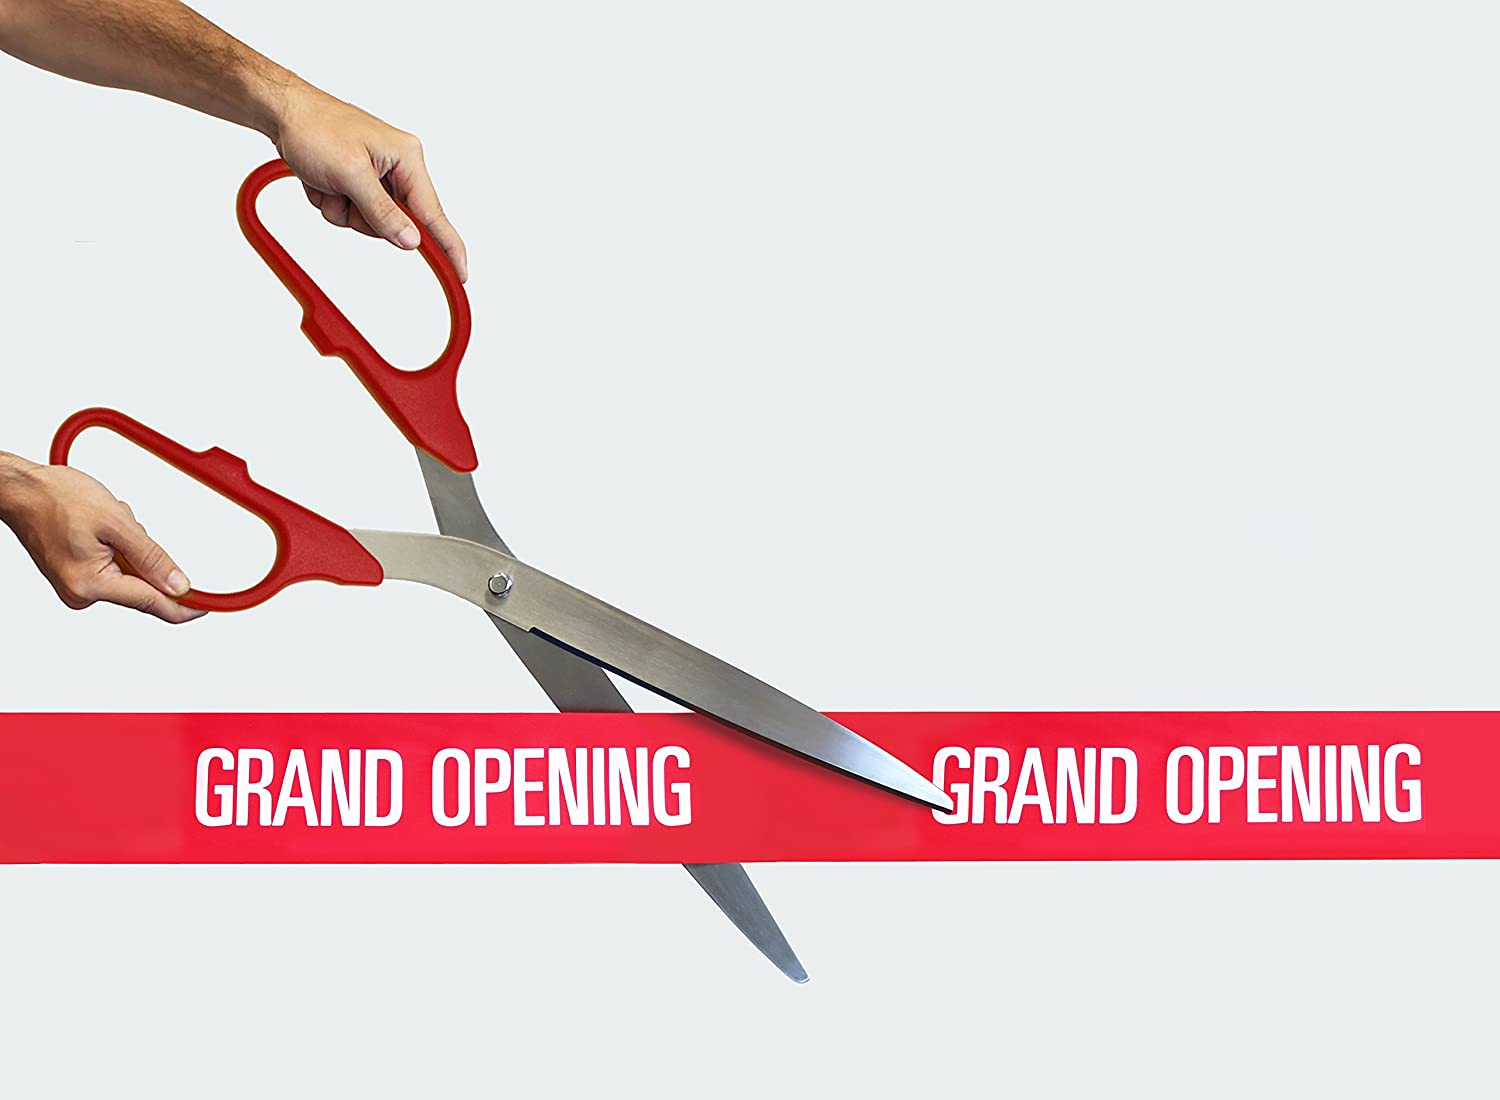 "25/"" Red//Silver Ceremonial Ribbon Cutting Scissors for Grand Opening"